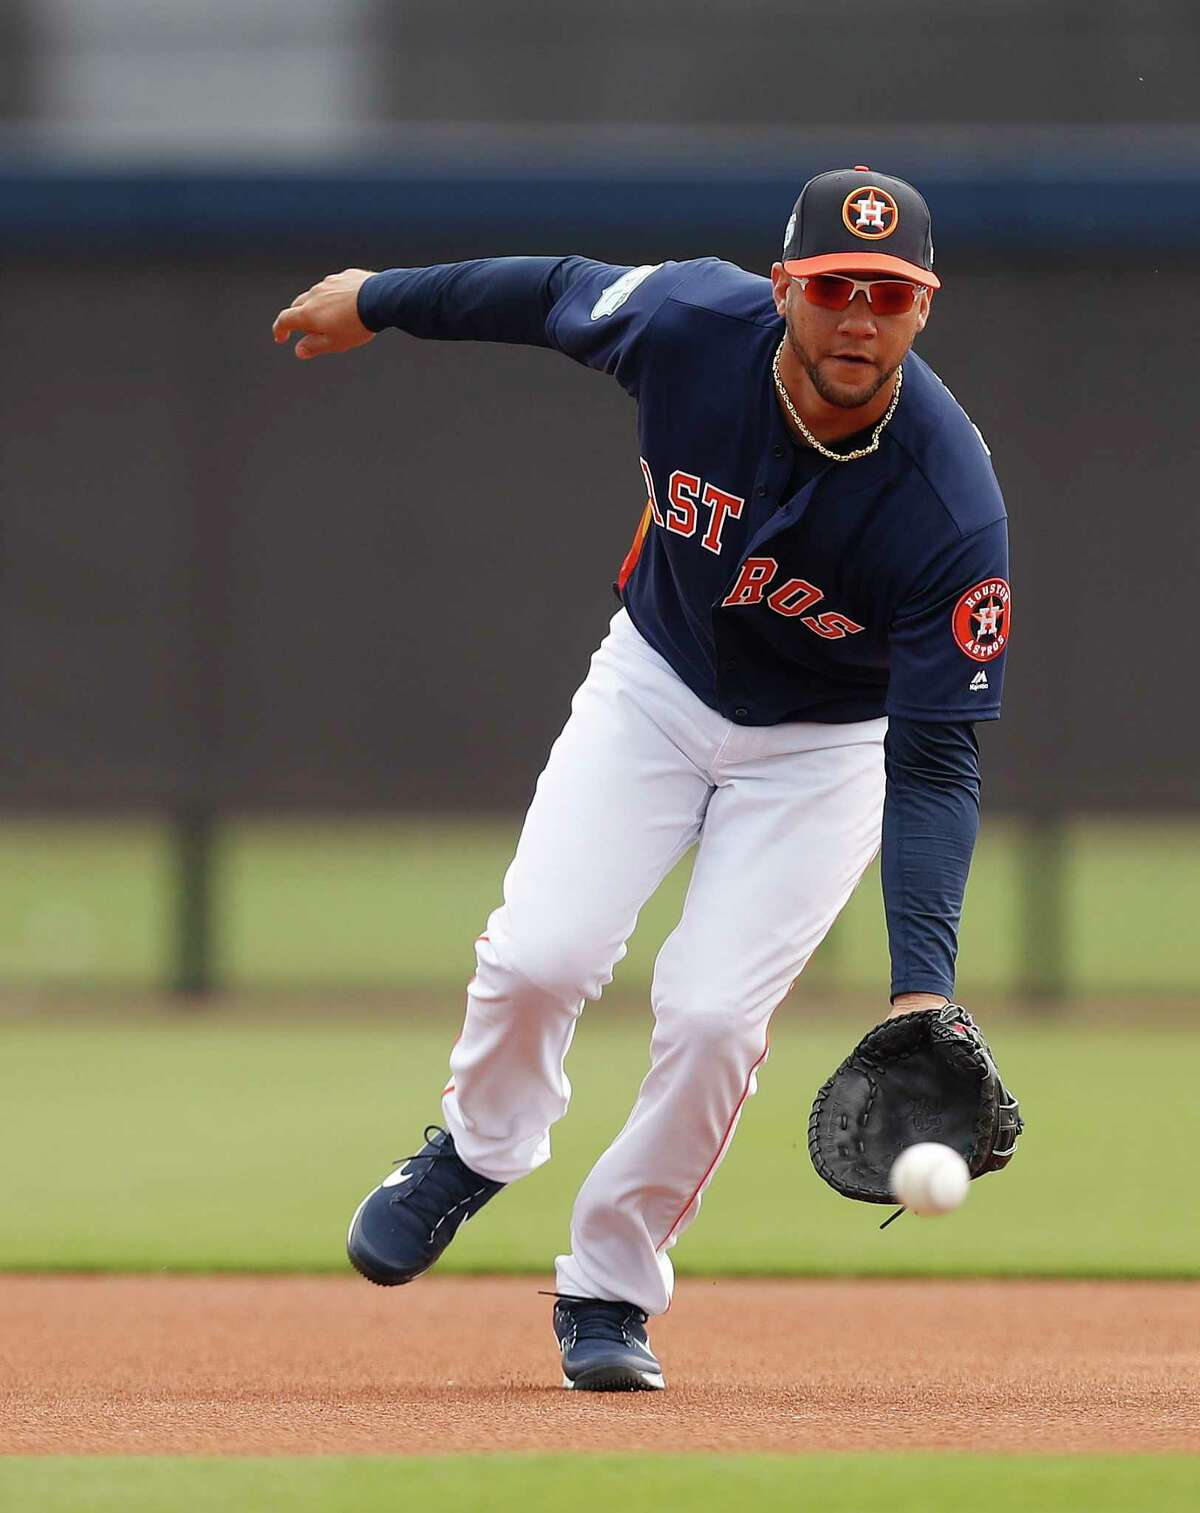 Houston Astros Yulieski Gurriel (10) catches a ground ball at first base during spring training at The Ballpark of the Palm Beaches, in West Palm Beach, Florida, Saturday, February 18, 2017.